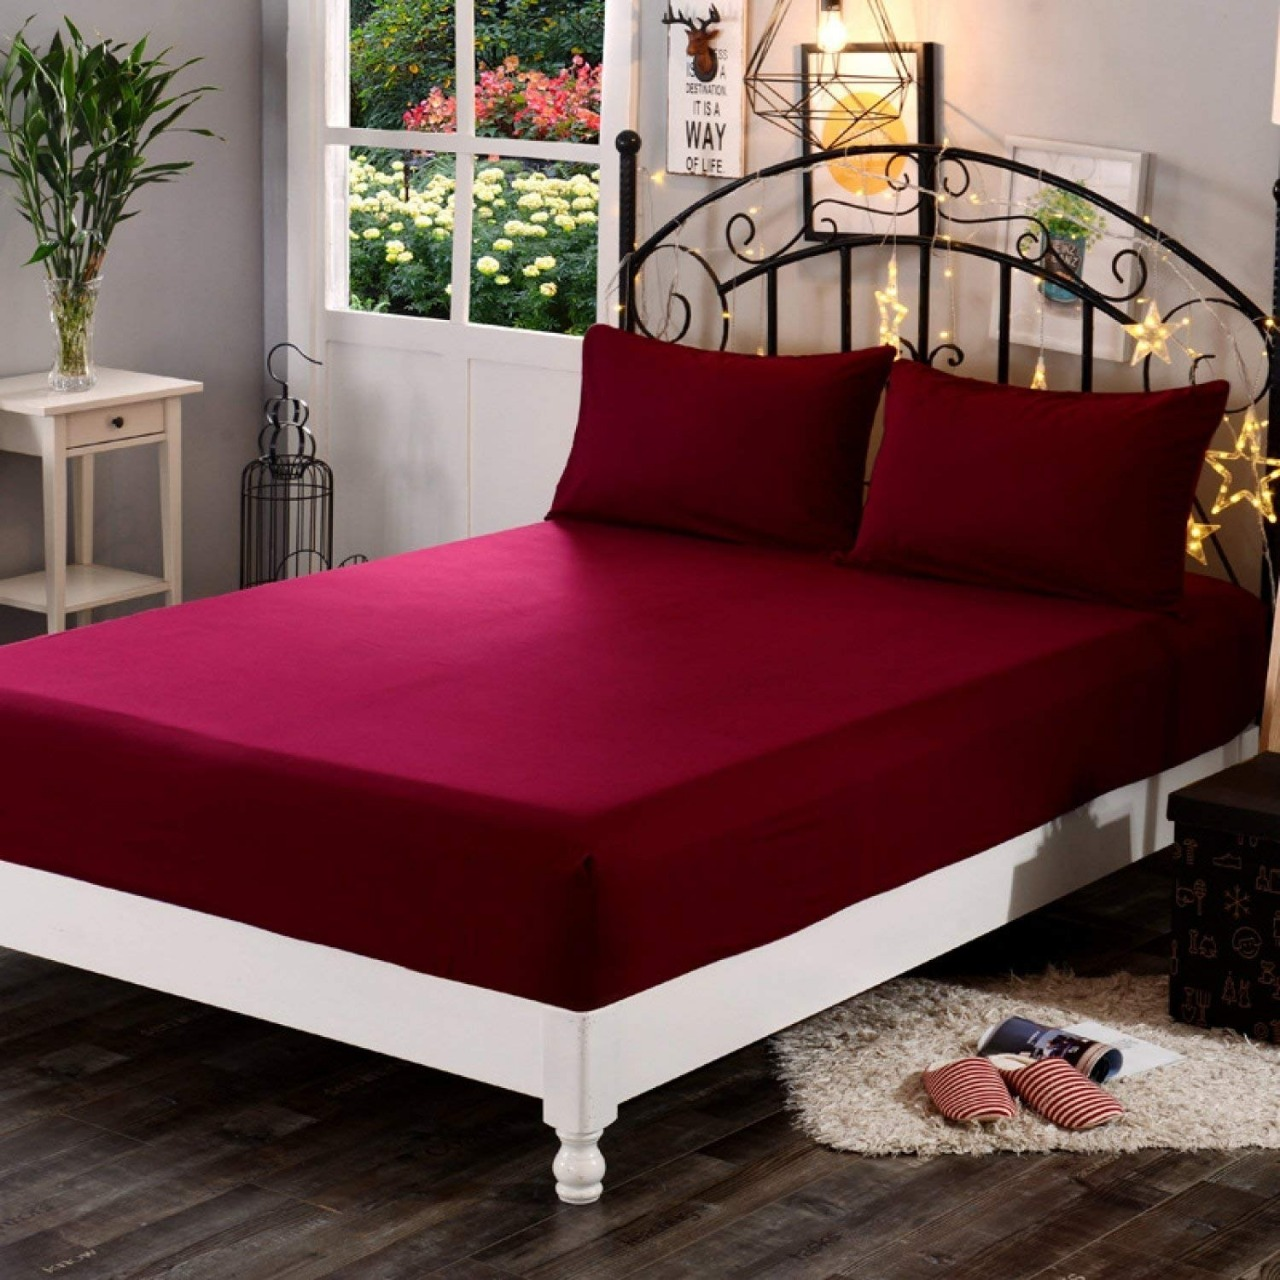 best point global solution Elastic Strap Double Size Waterproof Mattress Protector  (Red)